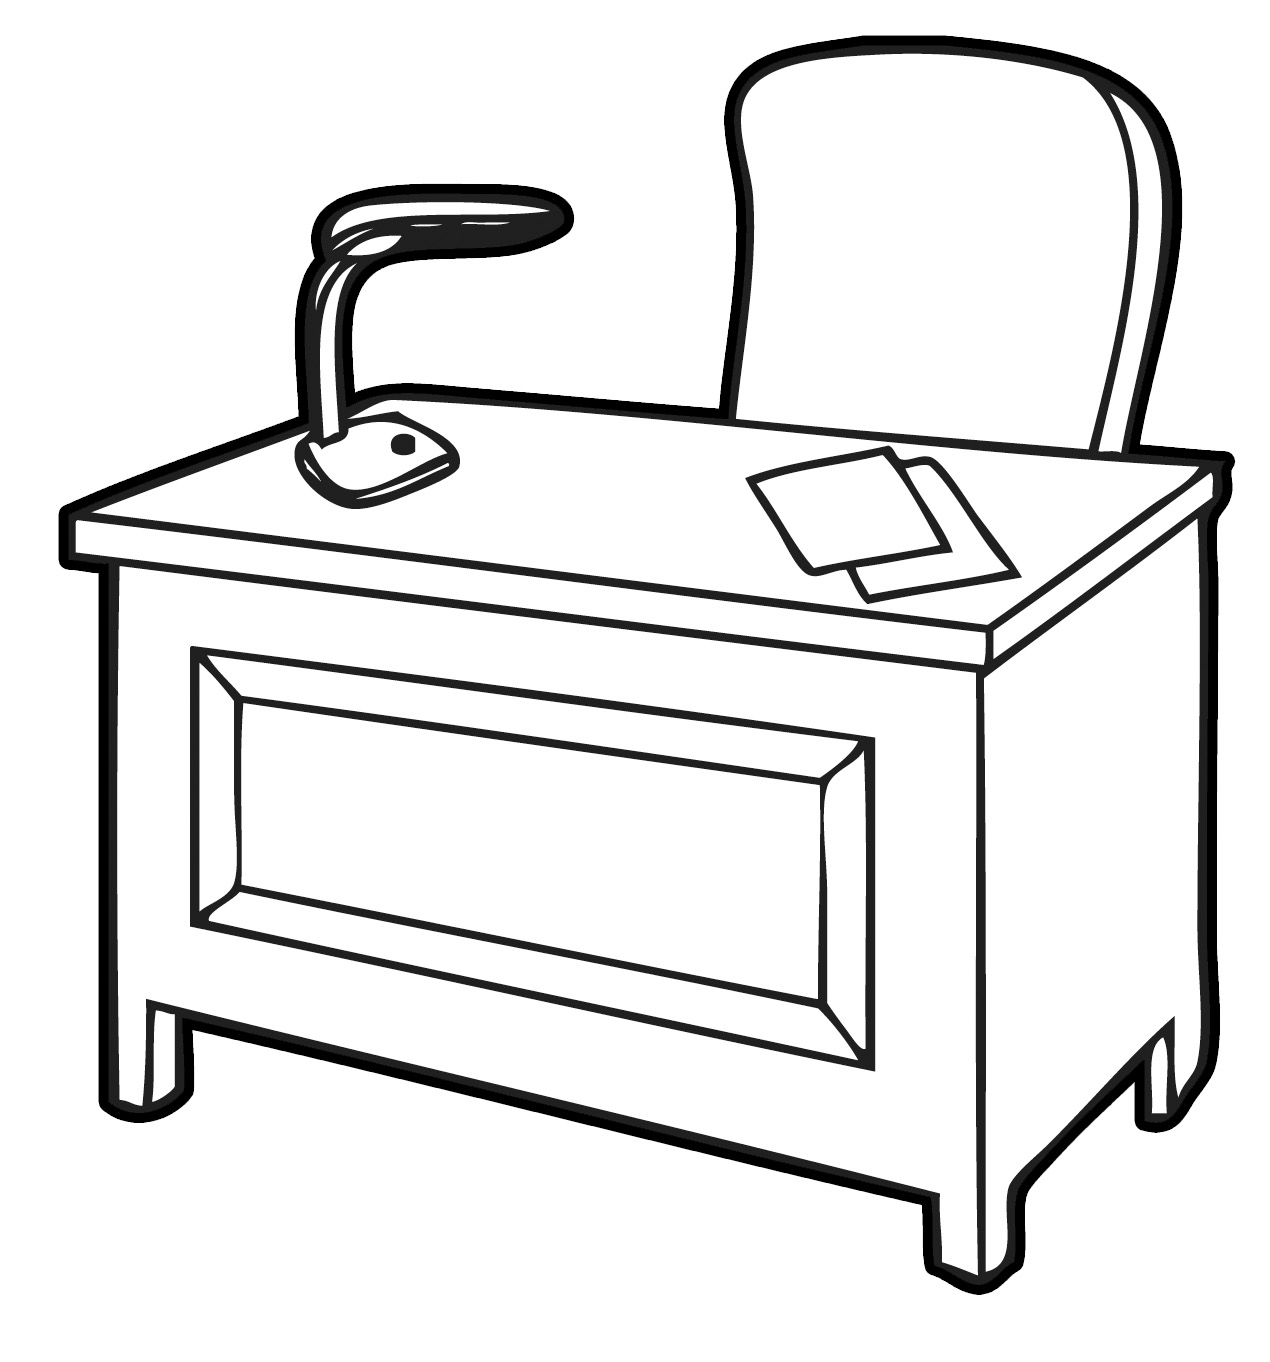 Chair and table in clipart black and white vector download Free Table Clipart Black And White, Download Free Clip Art, Free ... vector download